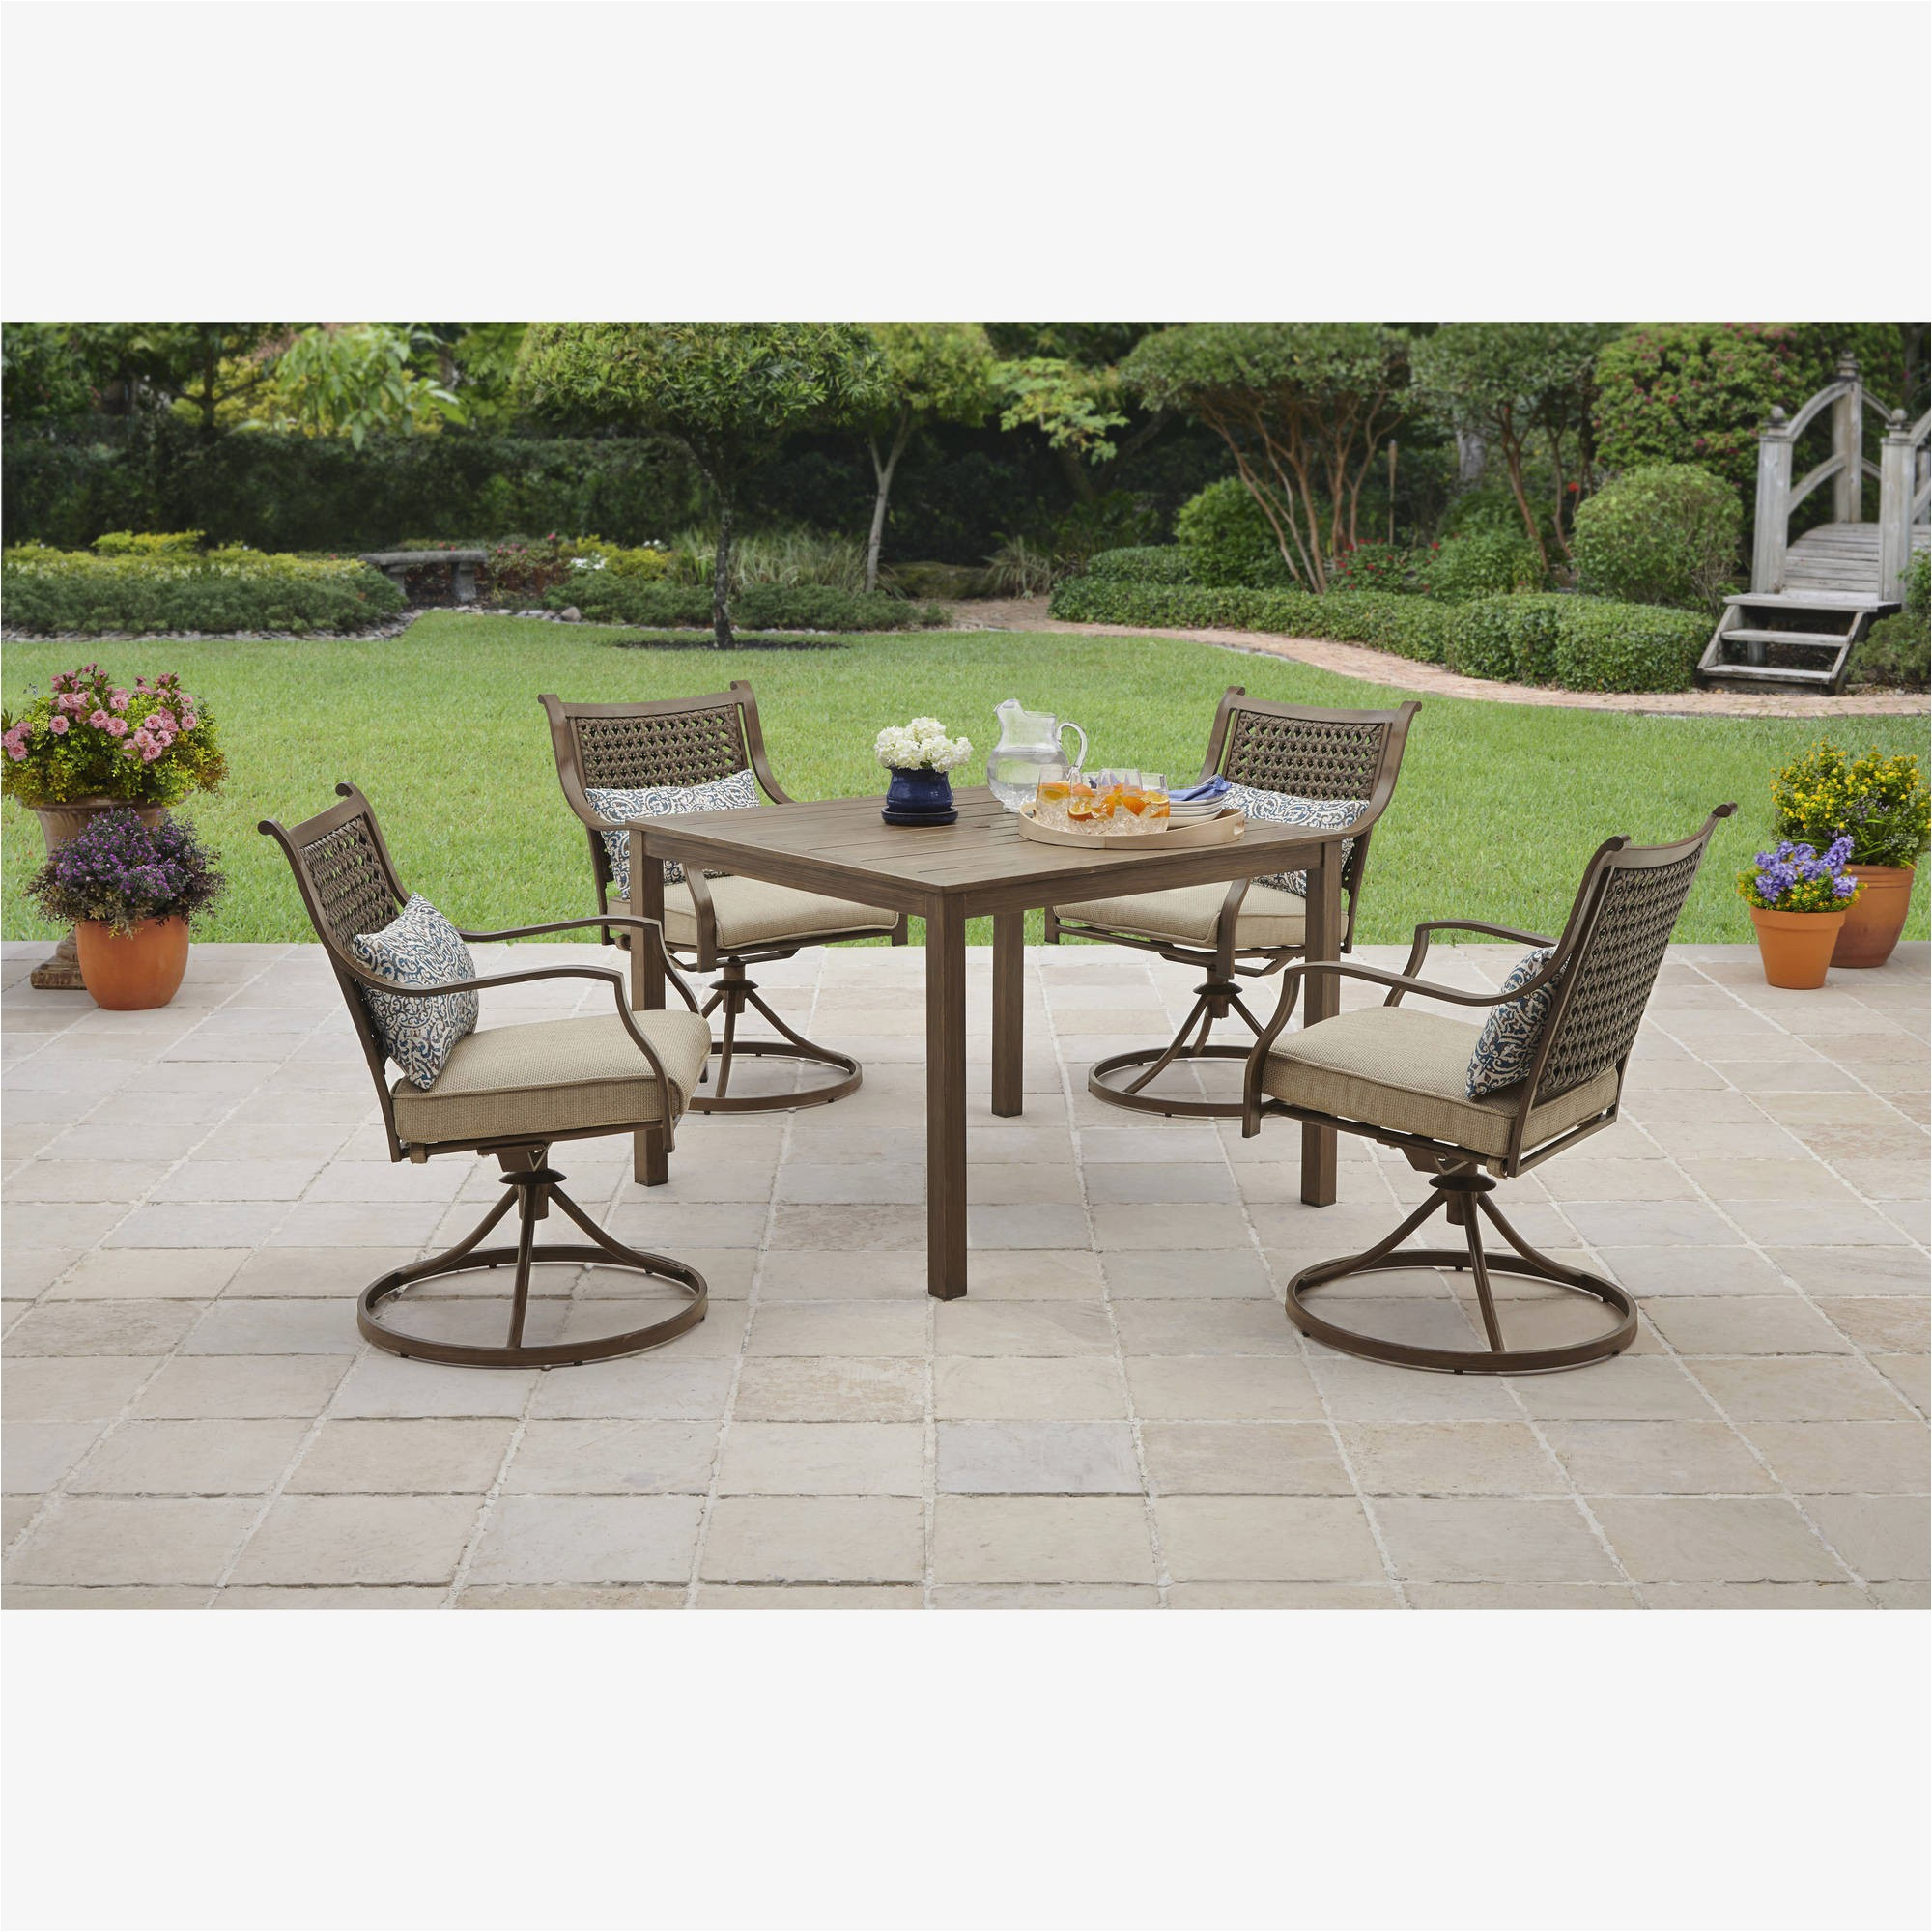 king soopers patio furniture room design plan top with home design